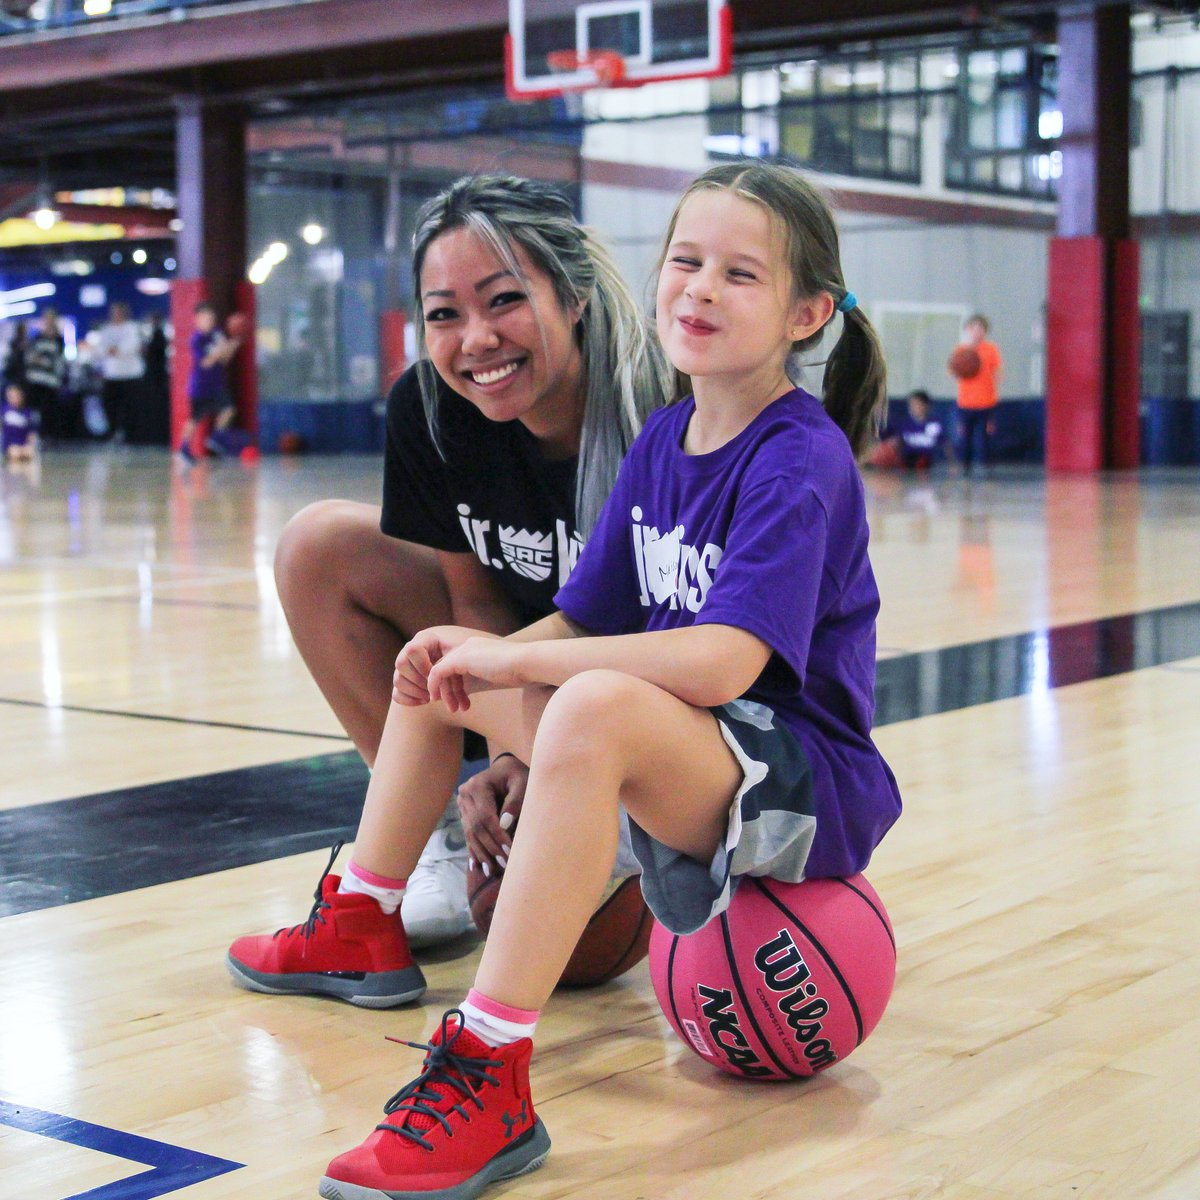 Happy International Women's Day! The Jr. Kings All-Girls Clinic is March 16th🏀  It's her time to play. Register your participant today >> https://bit.ly/2EZtSIz